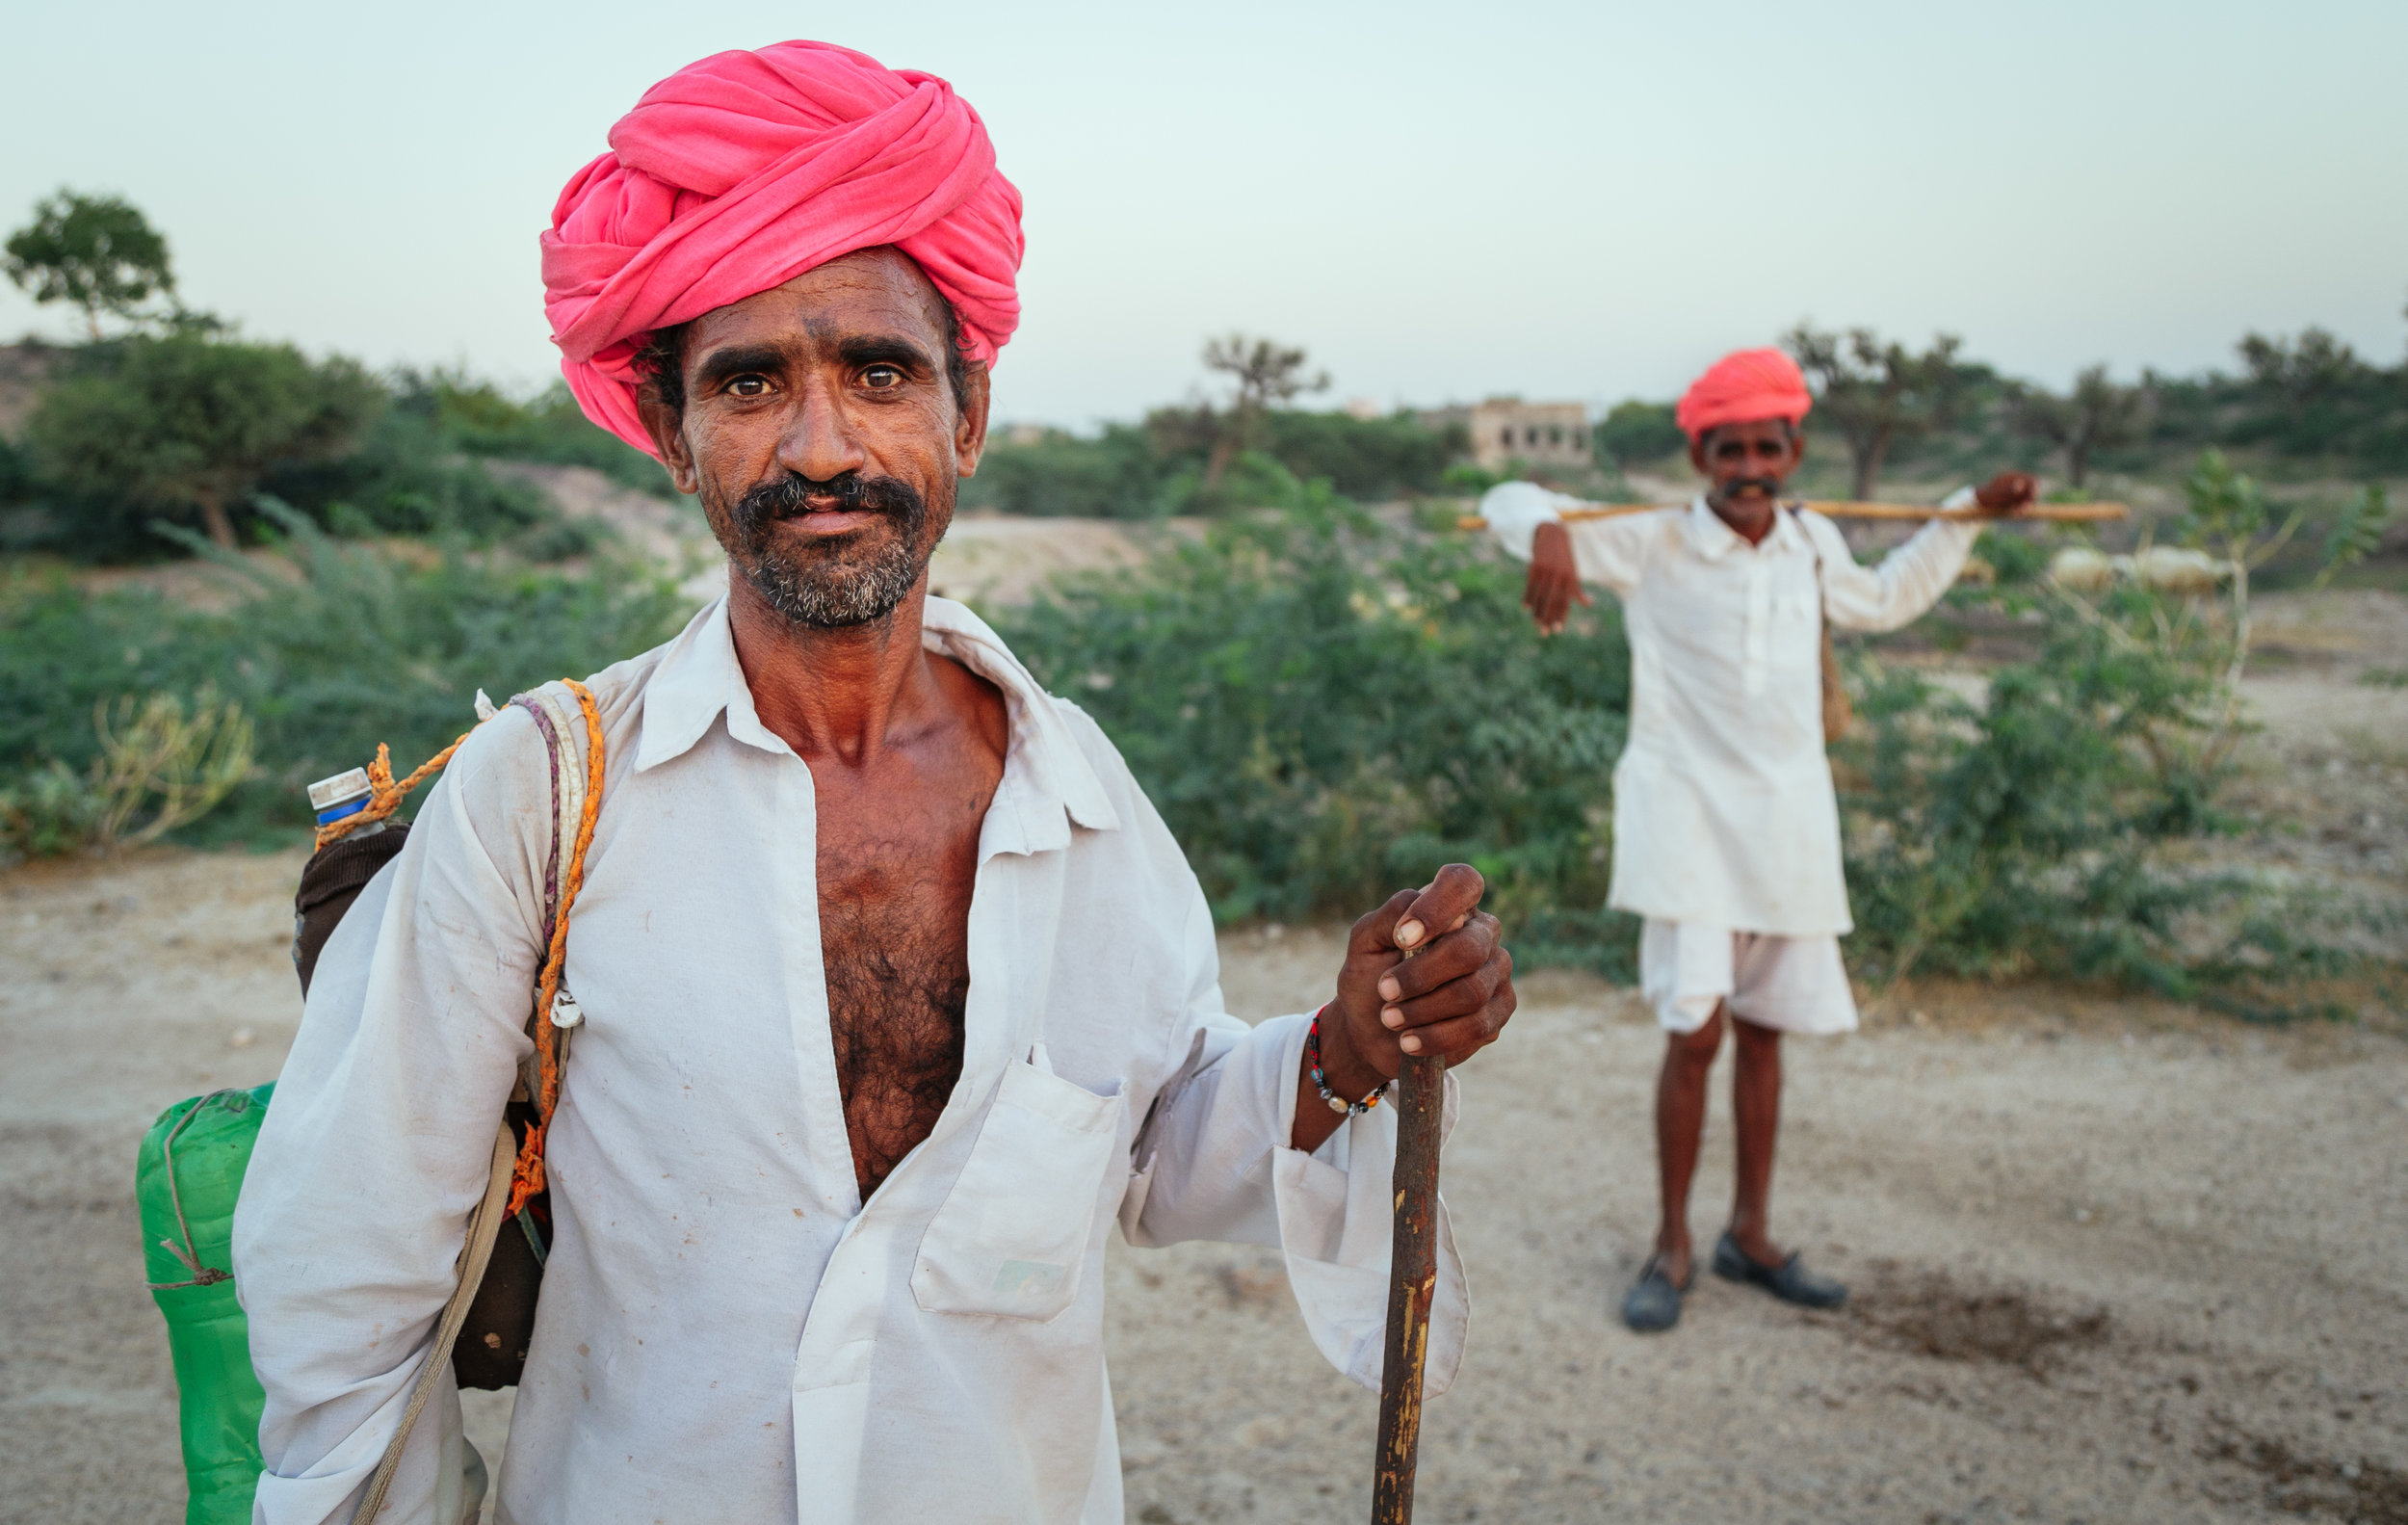 Cattle herders with traditional Rajasthani turbans in a village